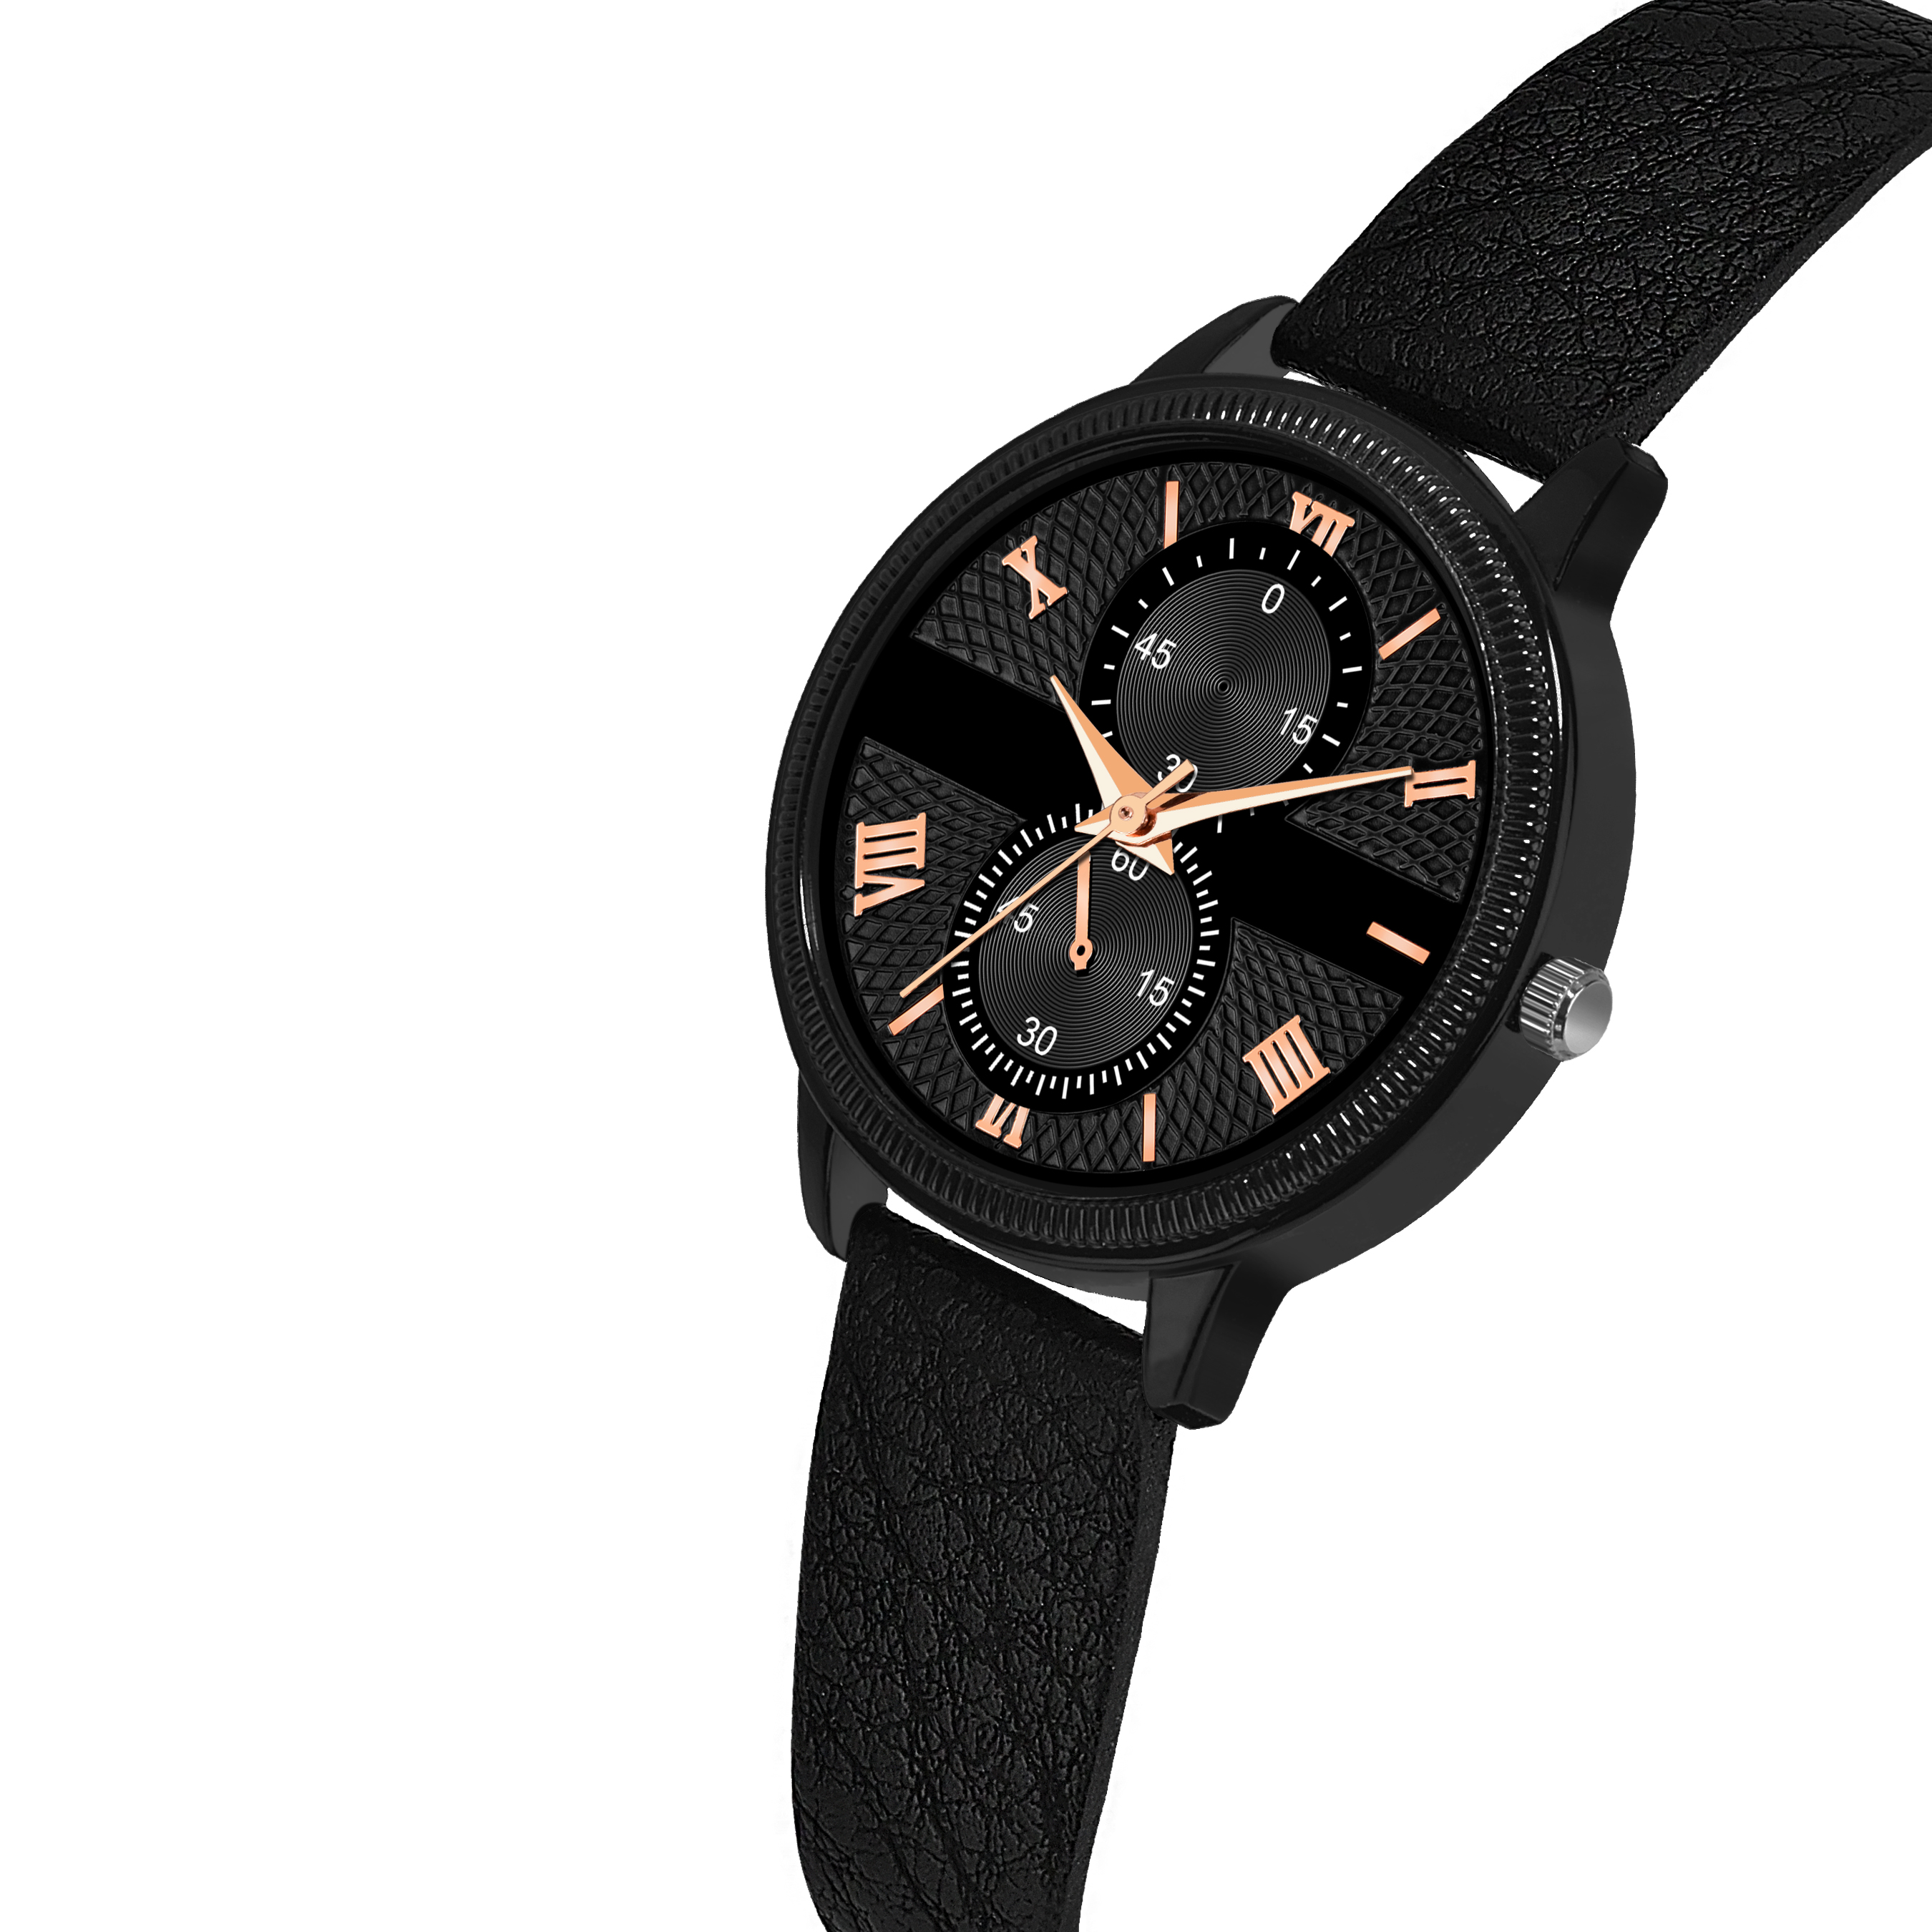 JM black 030 Ray DAY AND DATE FUNCTIONING